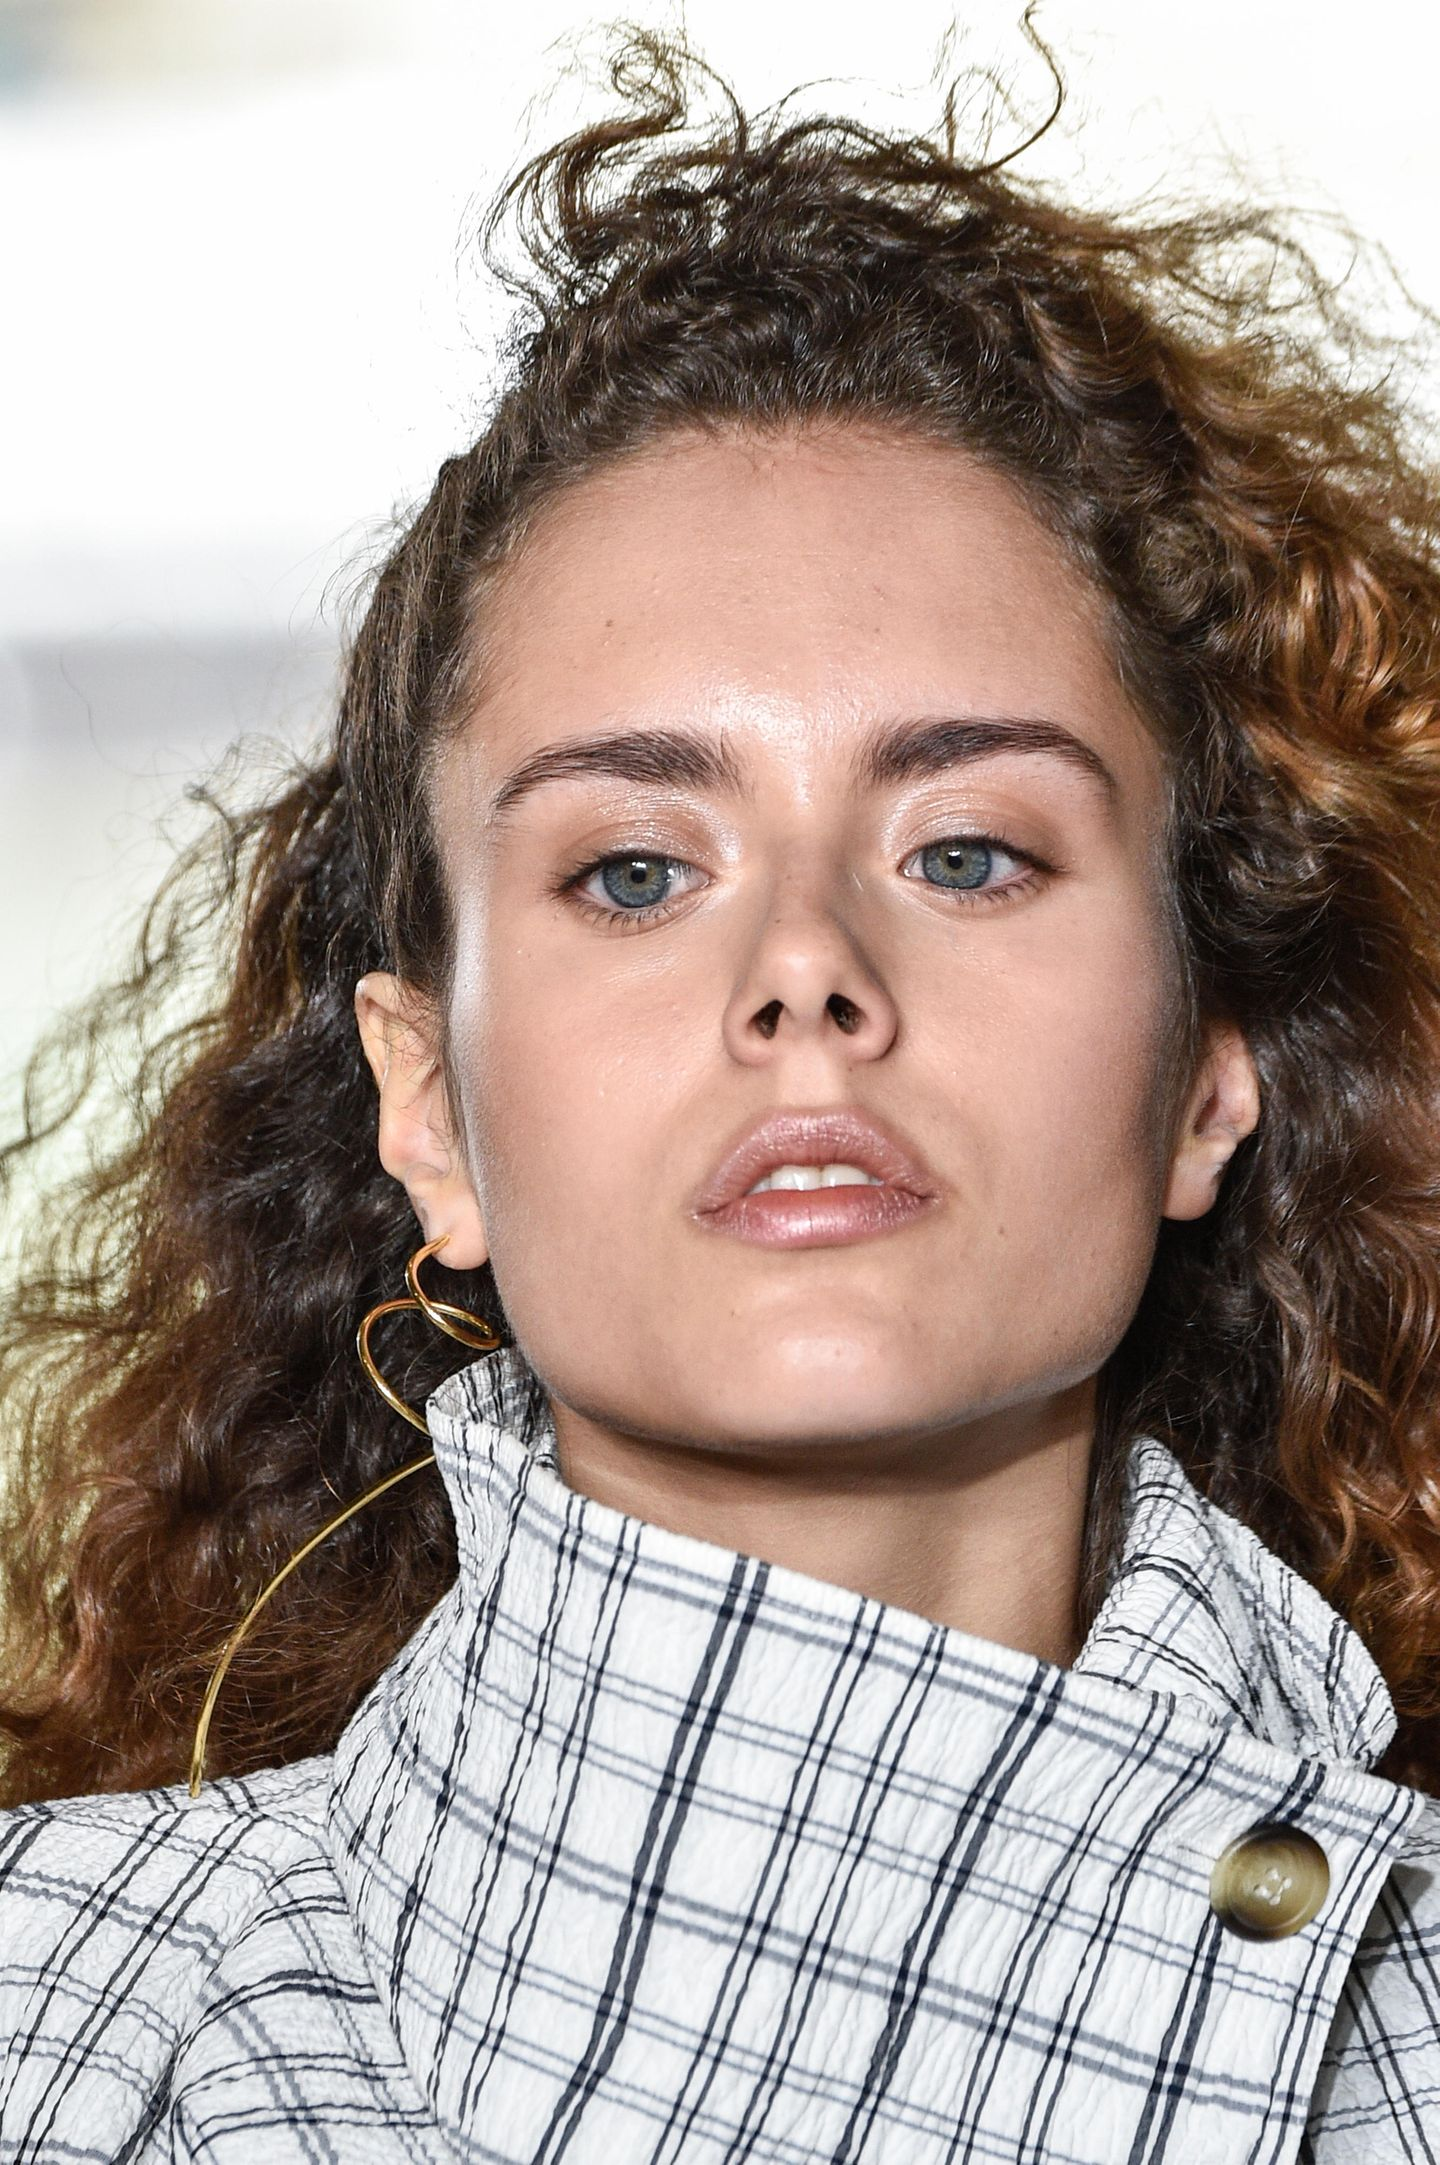 Beauty-Trends 2019: Make-Up mit Glow